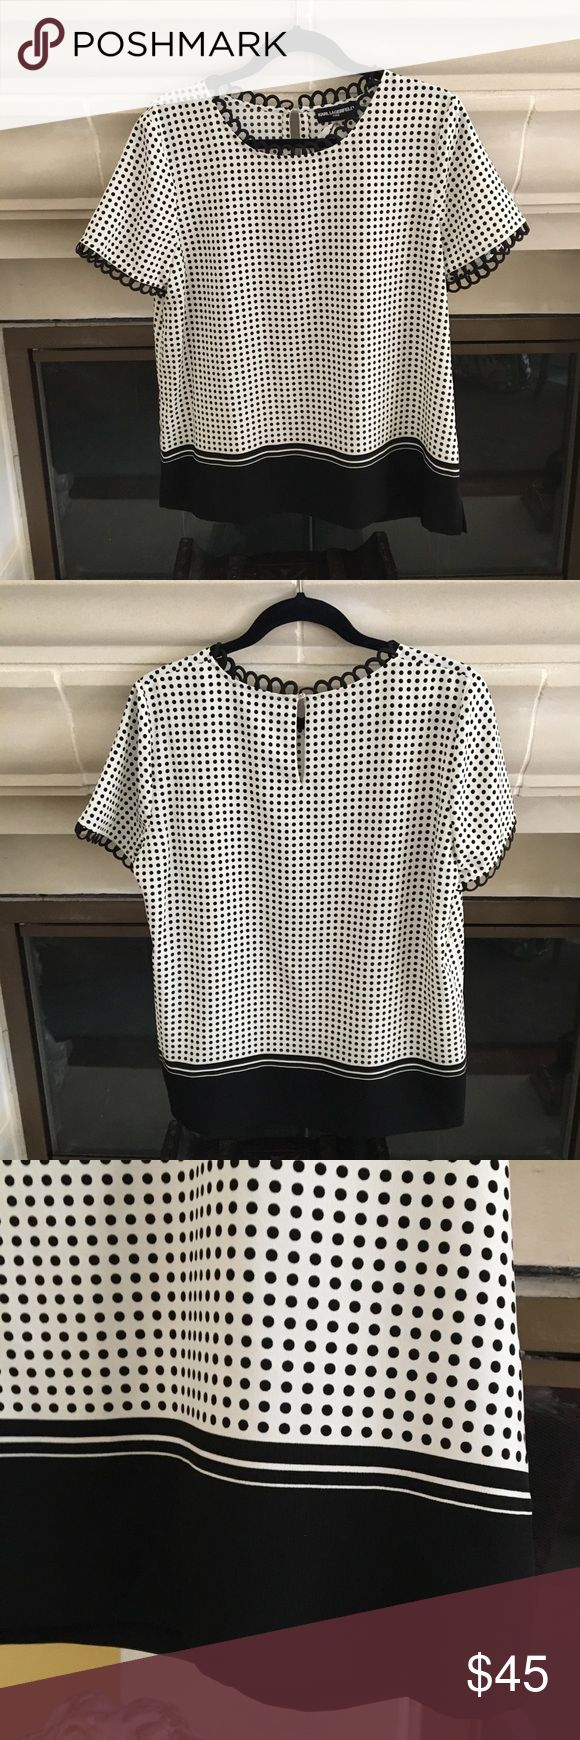 NWT Karl Lagerfeld Polka Dot Short Sleeve Blouse NWT Karl Lagerfeld short sleeve polka dot blouse with scalloped details on sleeves on neckline. Perfect condition. Bundle and save! 🛍 Karl Lagerfeld Tops Blouses